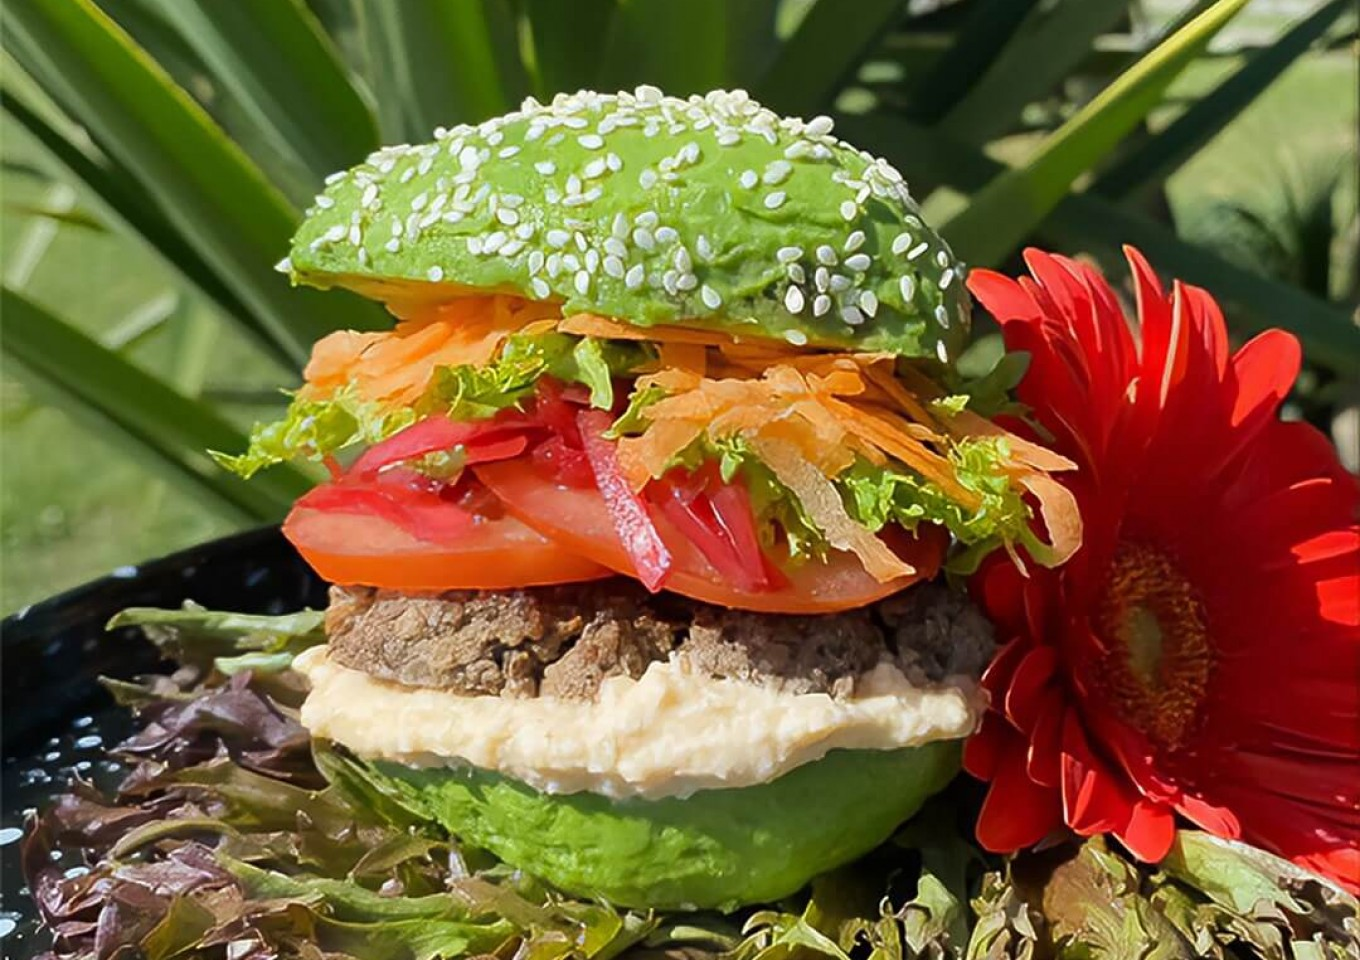 My Not So Avo-rage Blended Burger - by Rosie Wells